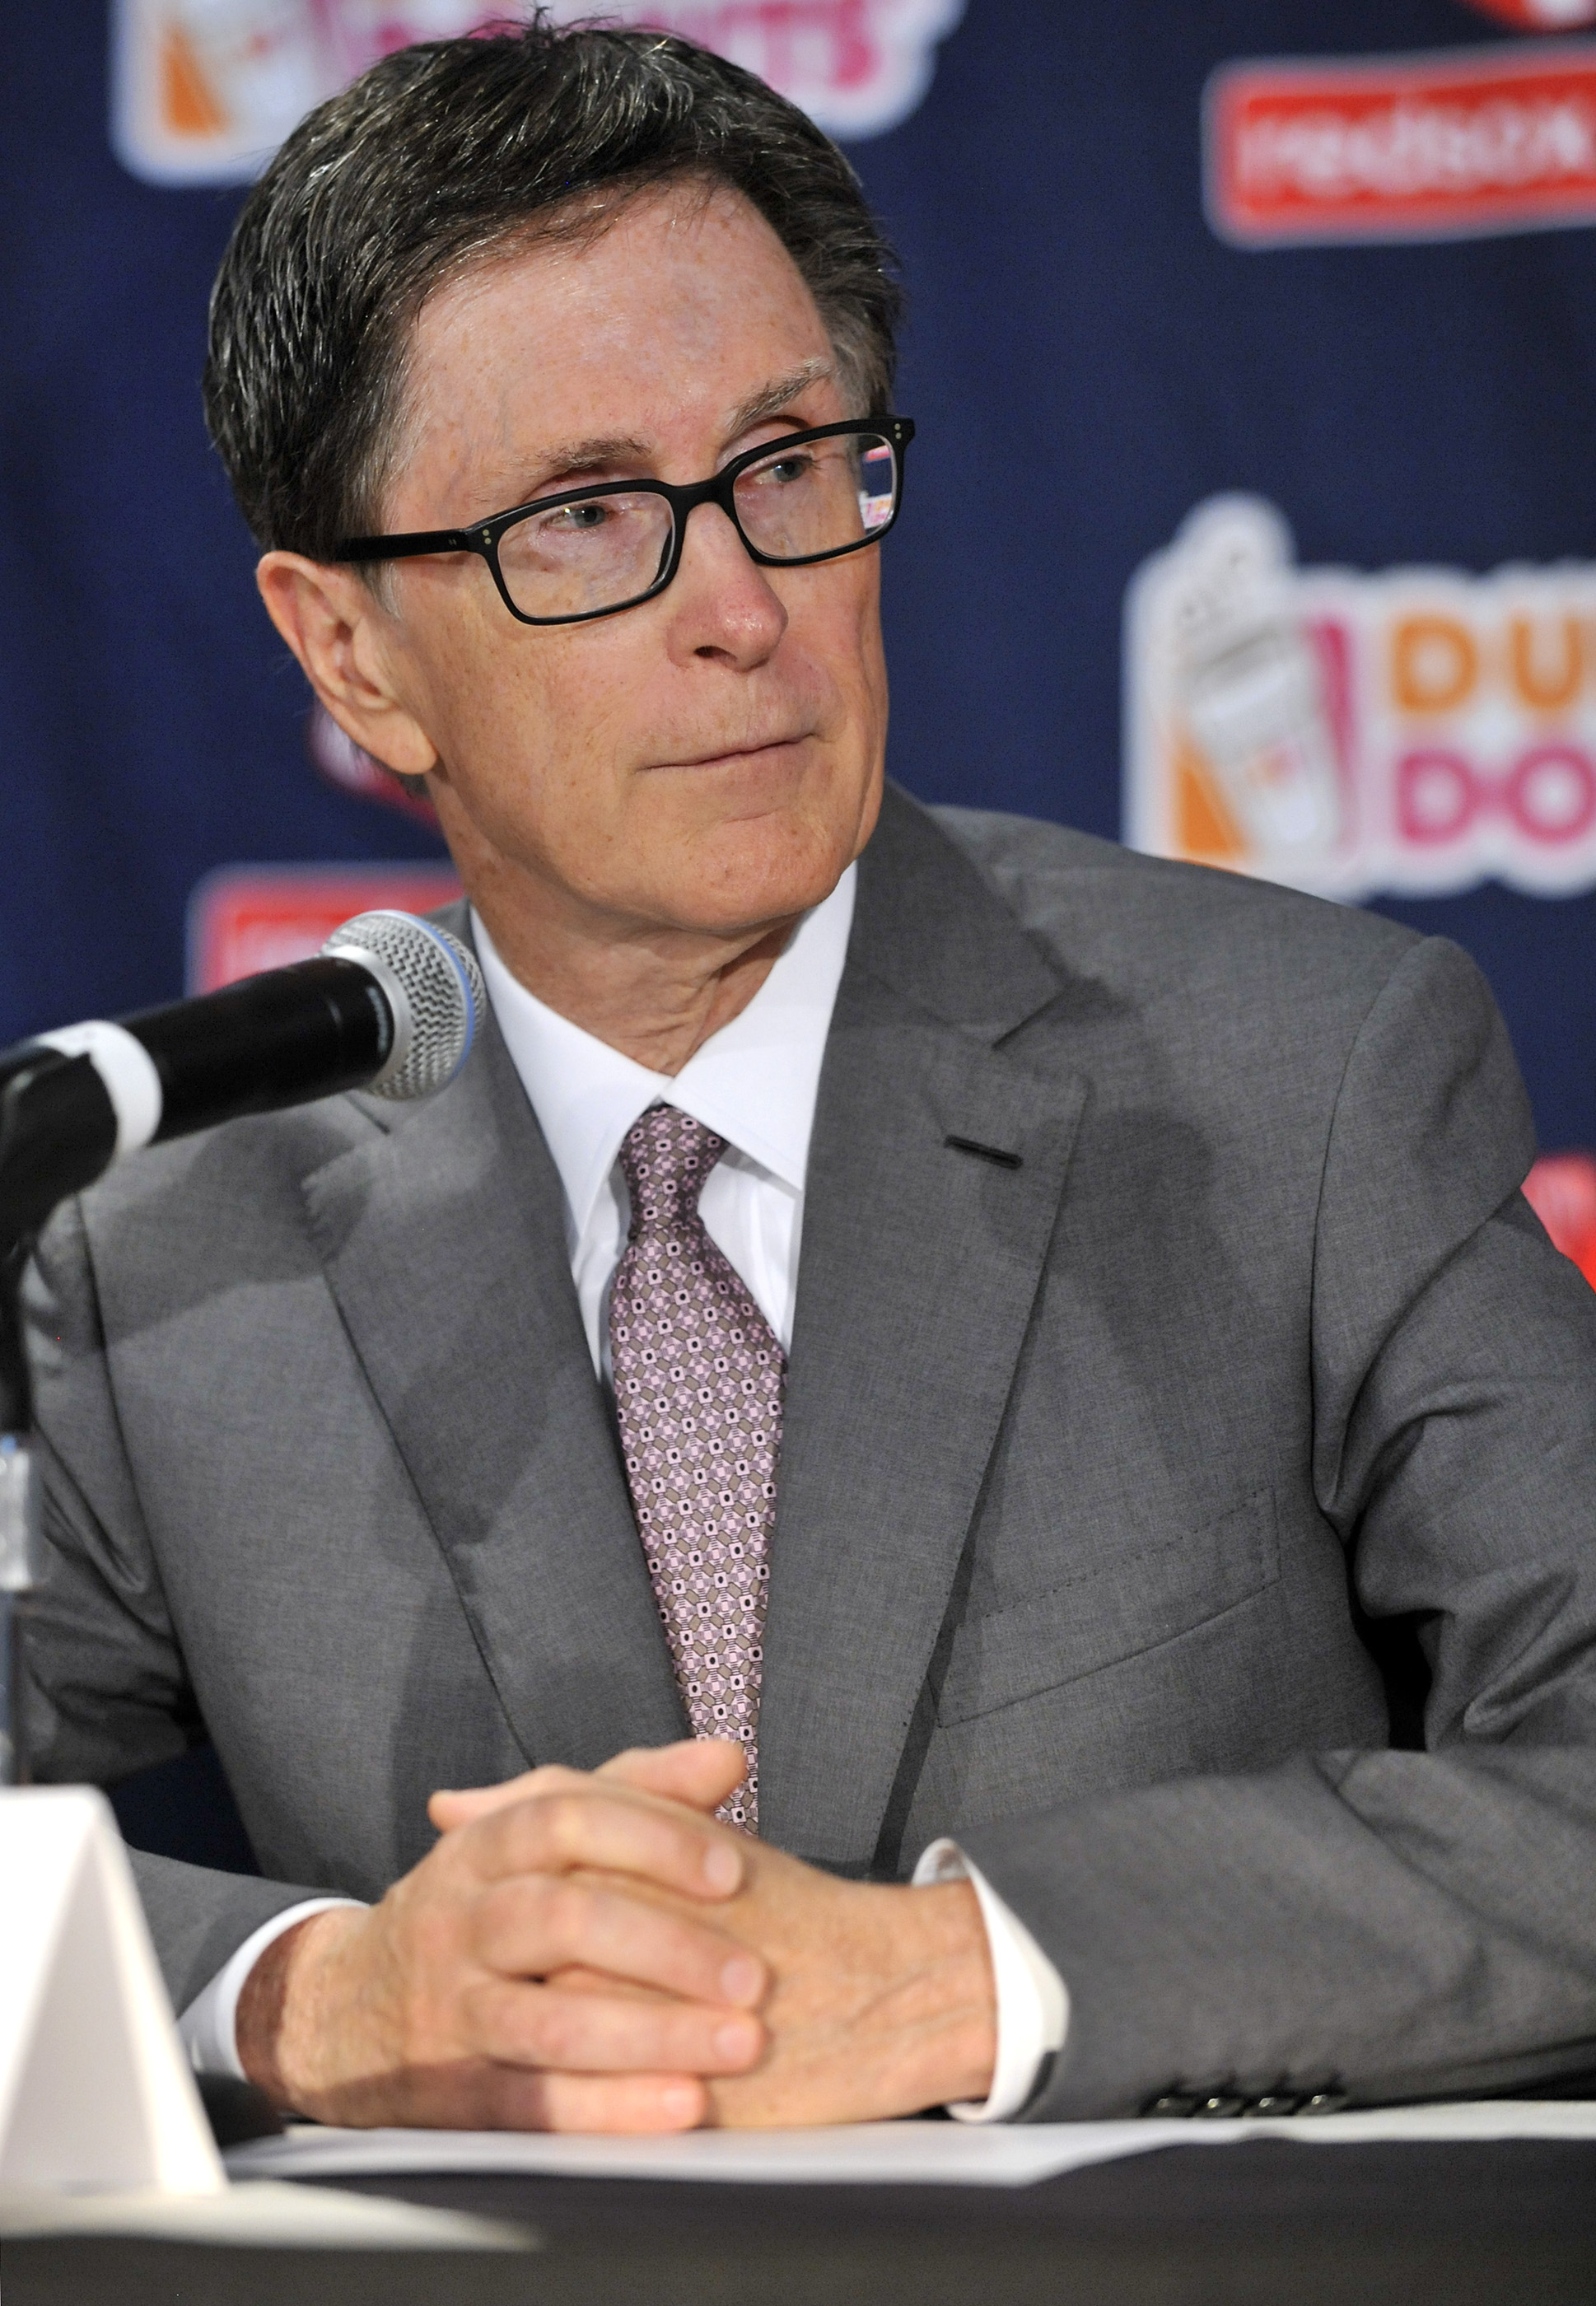 Red Sox Owner John Henry responds to a reporter's question during a news conference where Dave Dombrowski was introduced at Fenway Park as the new Boston Red Sox president of baseball operations Wednesday, Aug. 19, 2015, in Boston. (AP Photo/Josh Reynolds